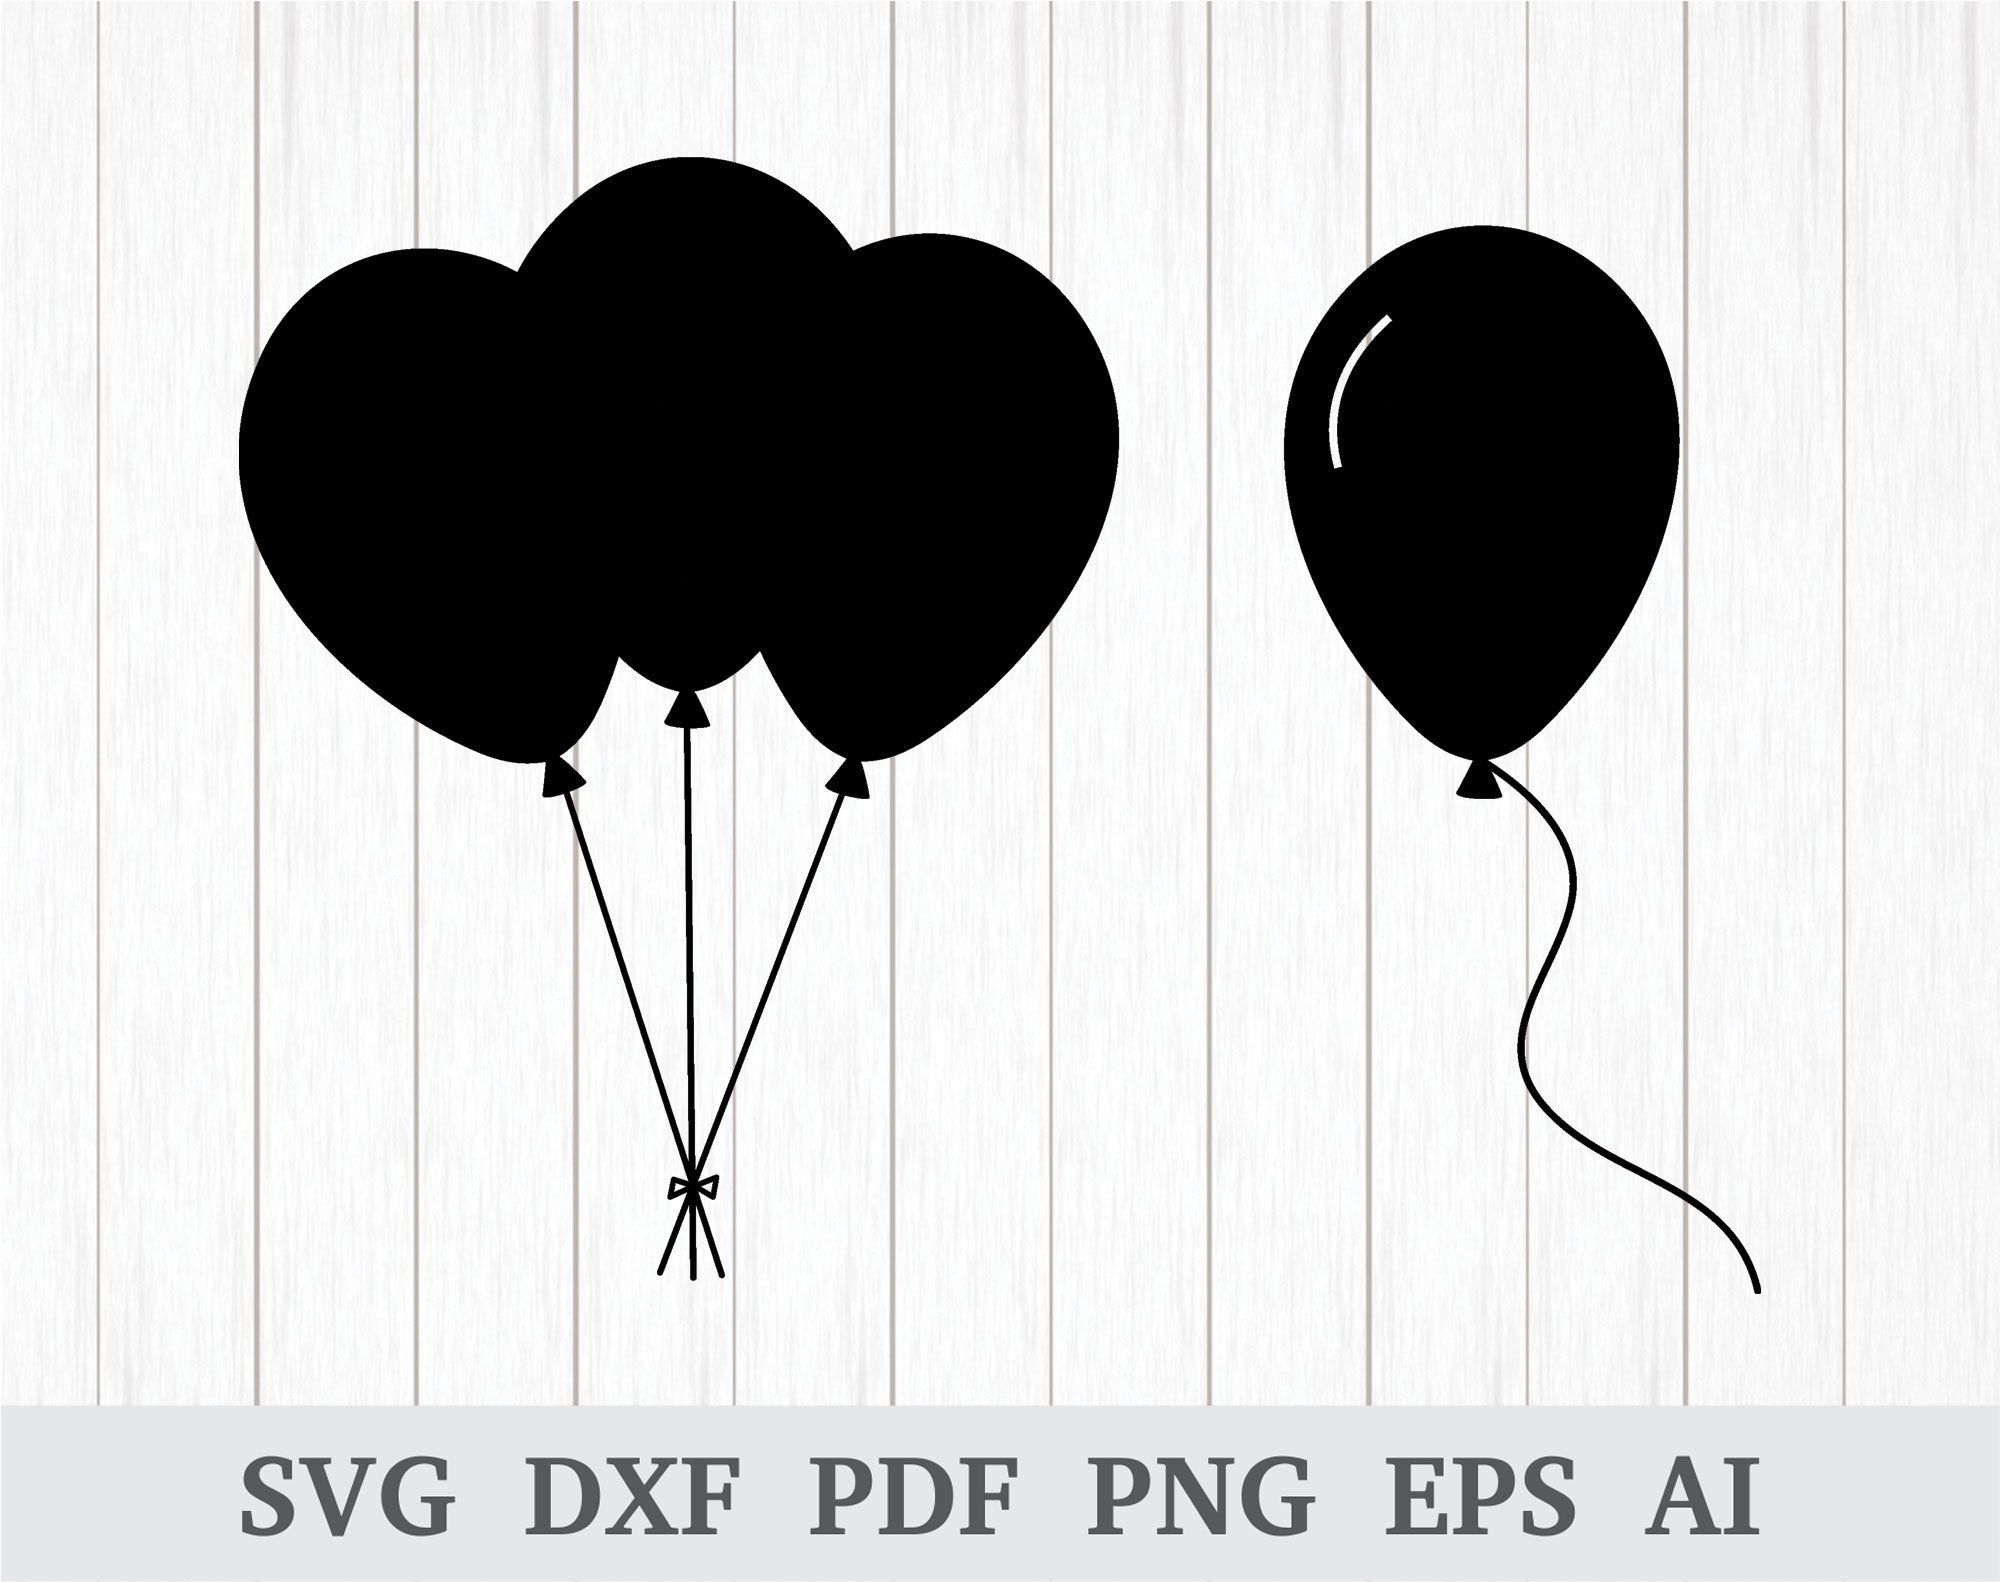 picture download Vector balloon silhouette. Pin on svg